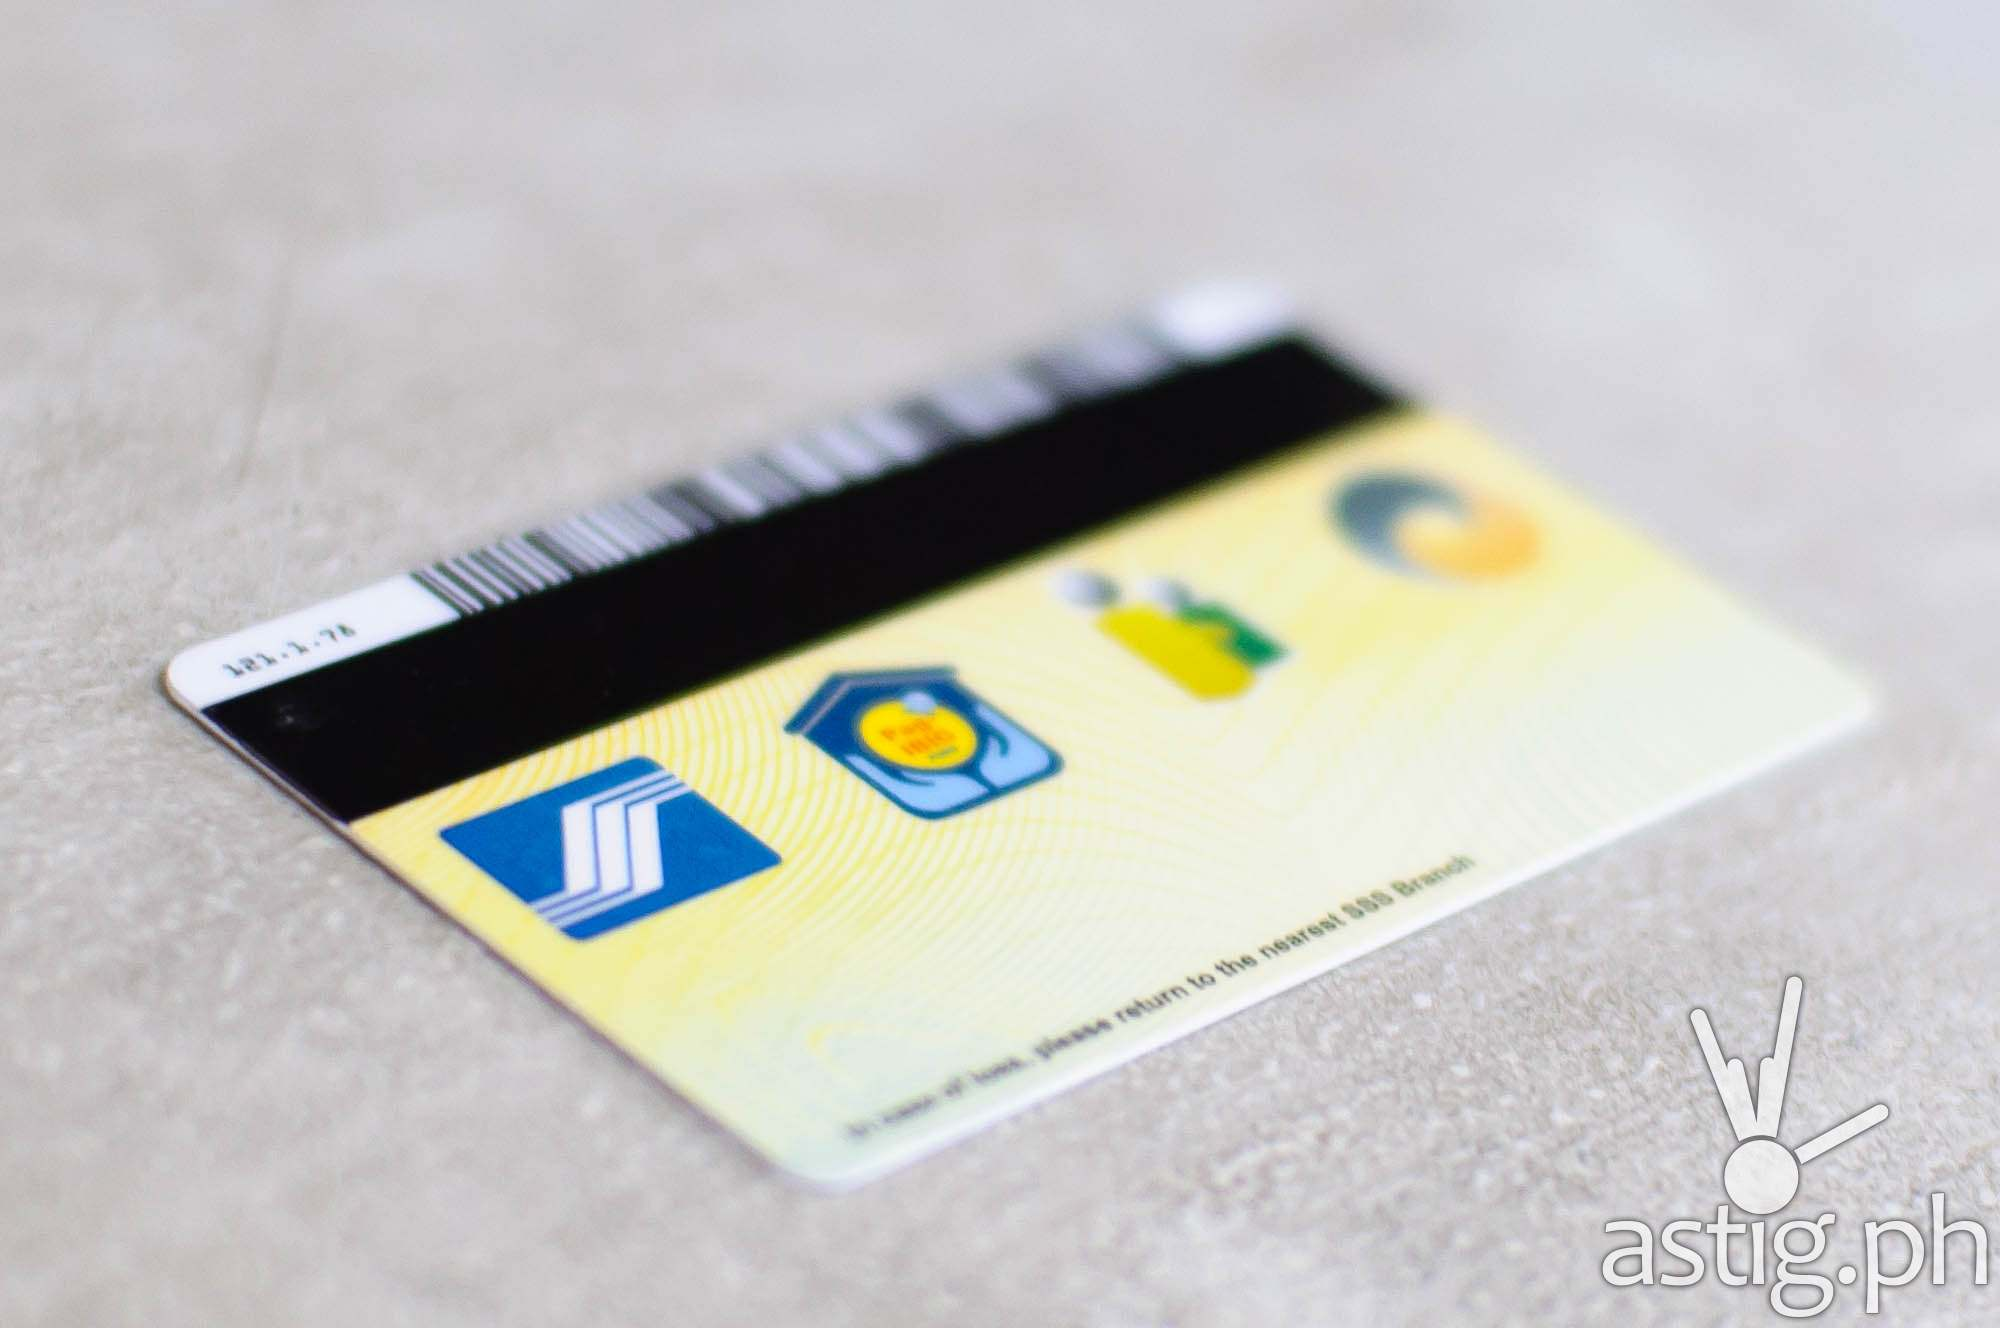 Unified Multi-Purpose ID Philippines